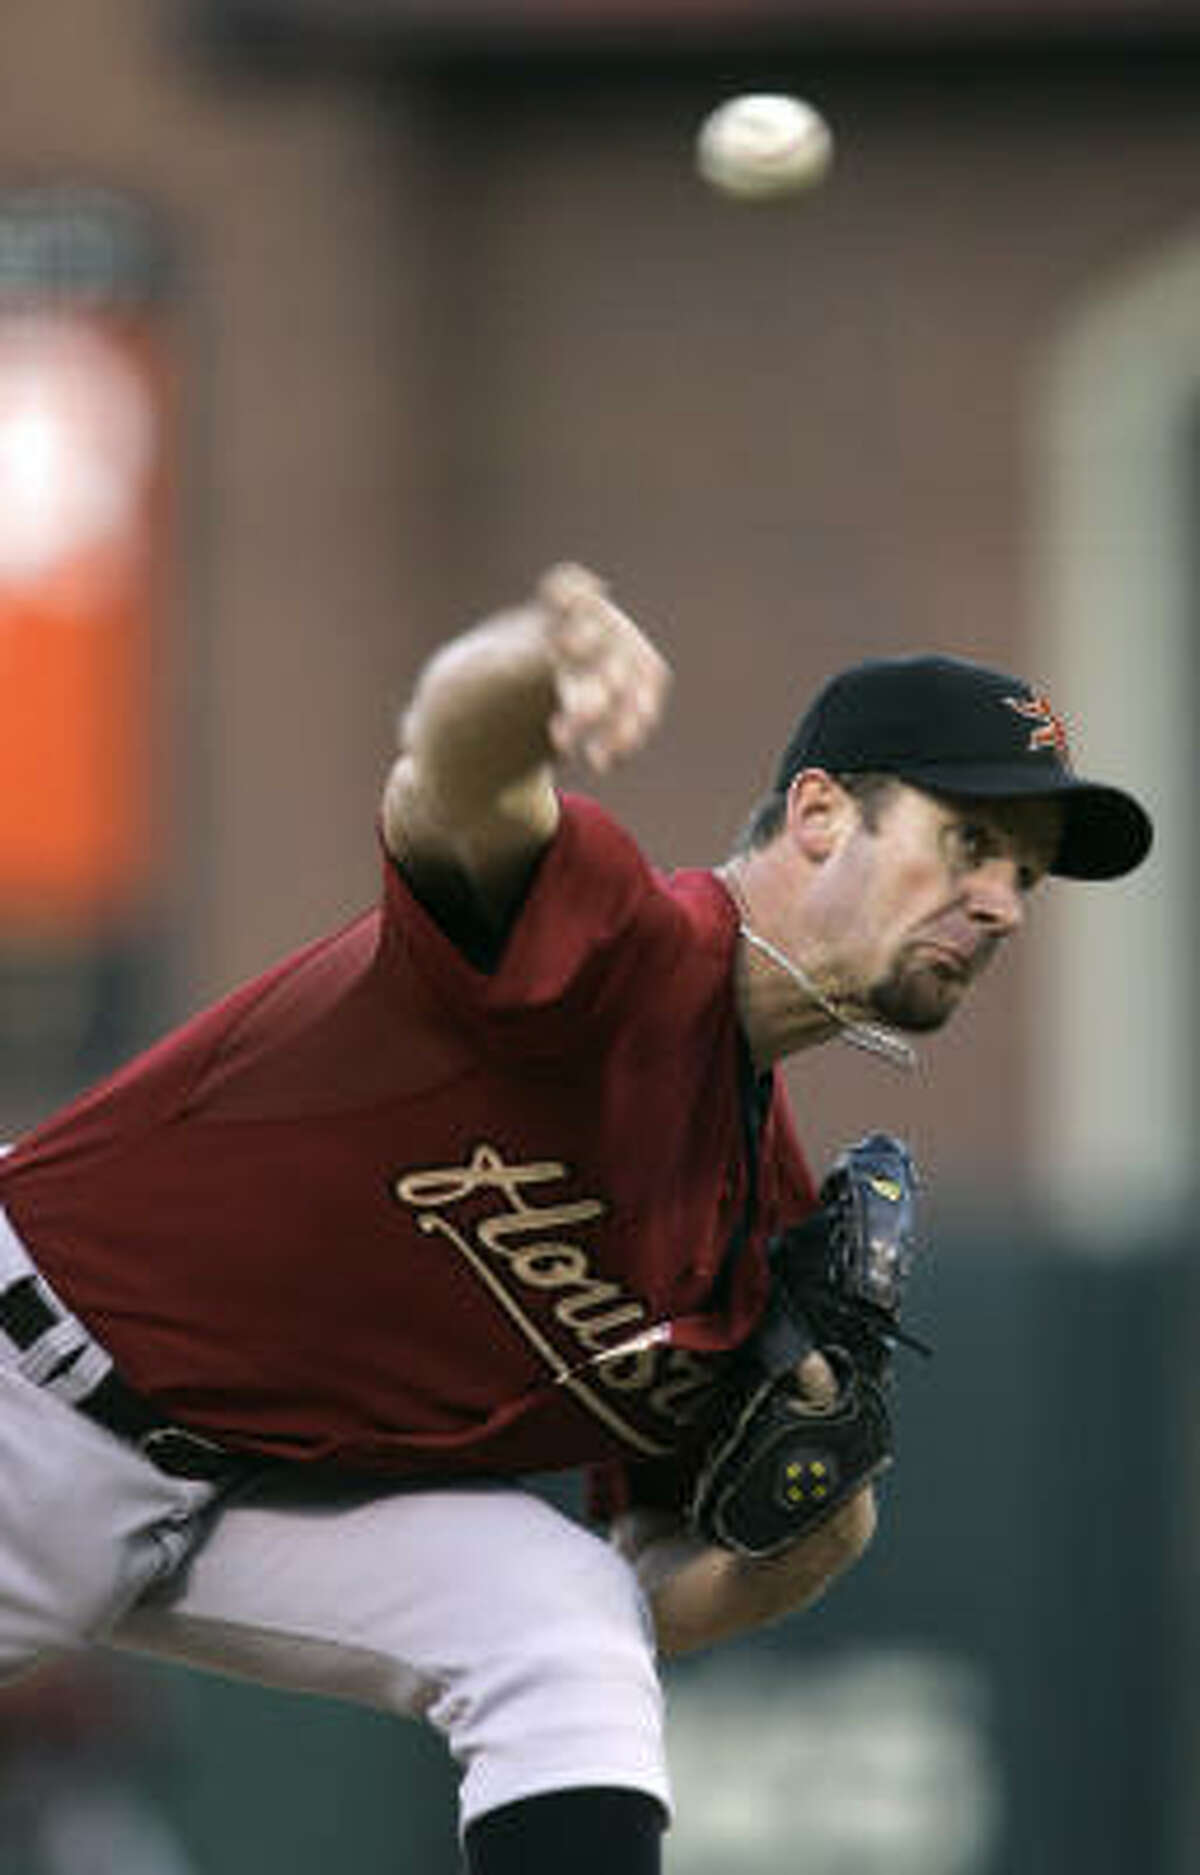 Roy Oswalt was perfect through three innings but gave up three runs in the sixth en route to losing his first game in May and third of the season. He went seven innings, striking out four, walking two and allowing four earned runs.